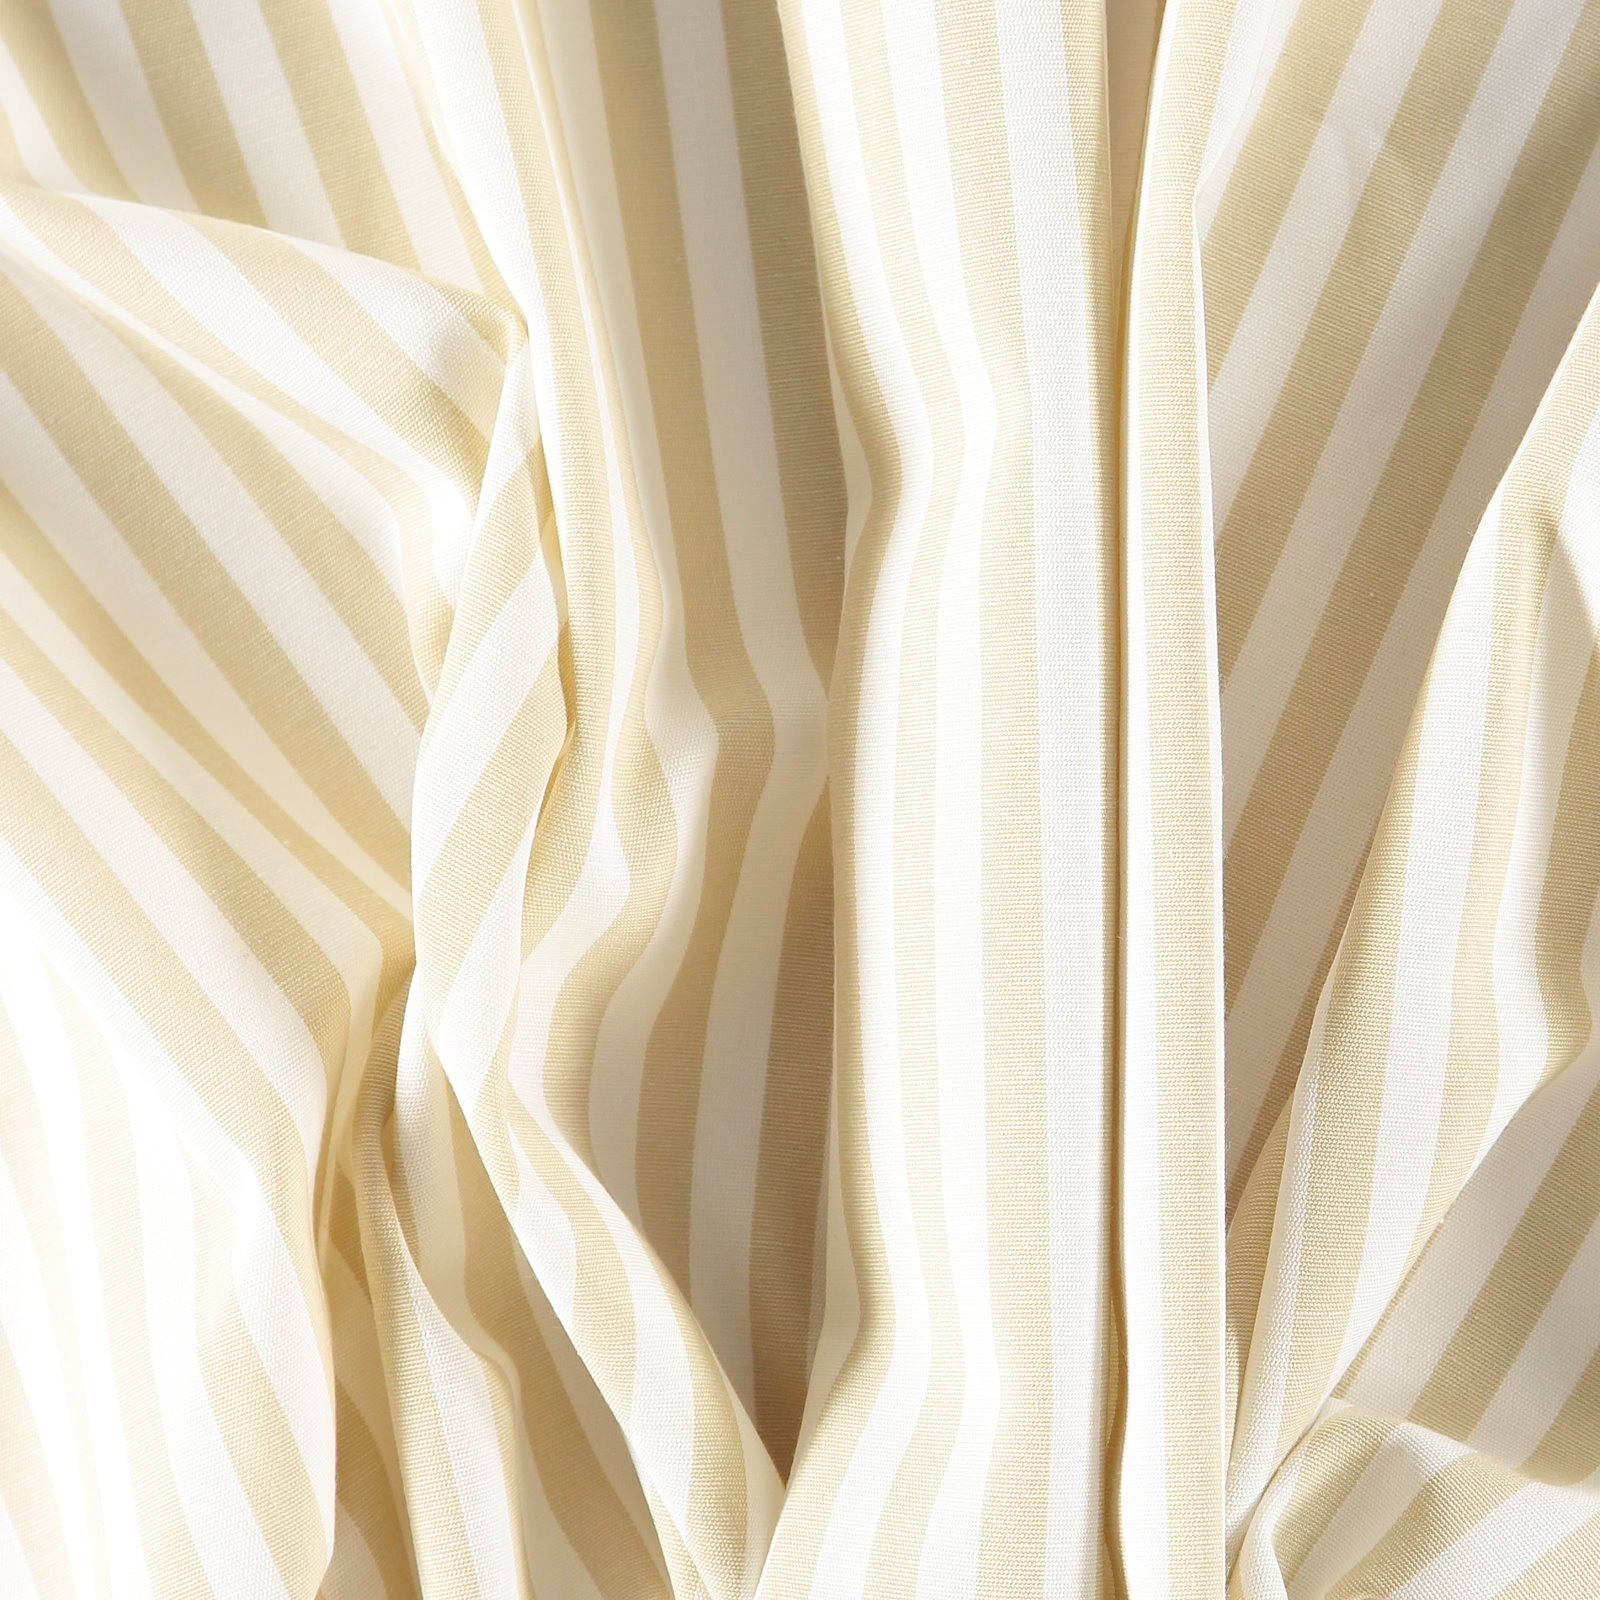 Woven nature/beige striped yarn dyed